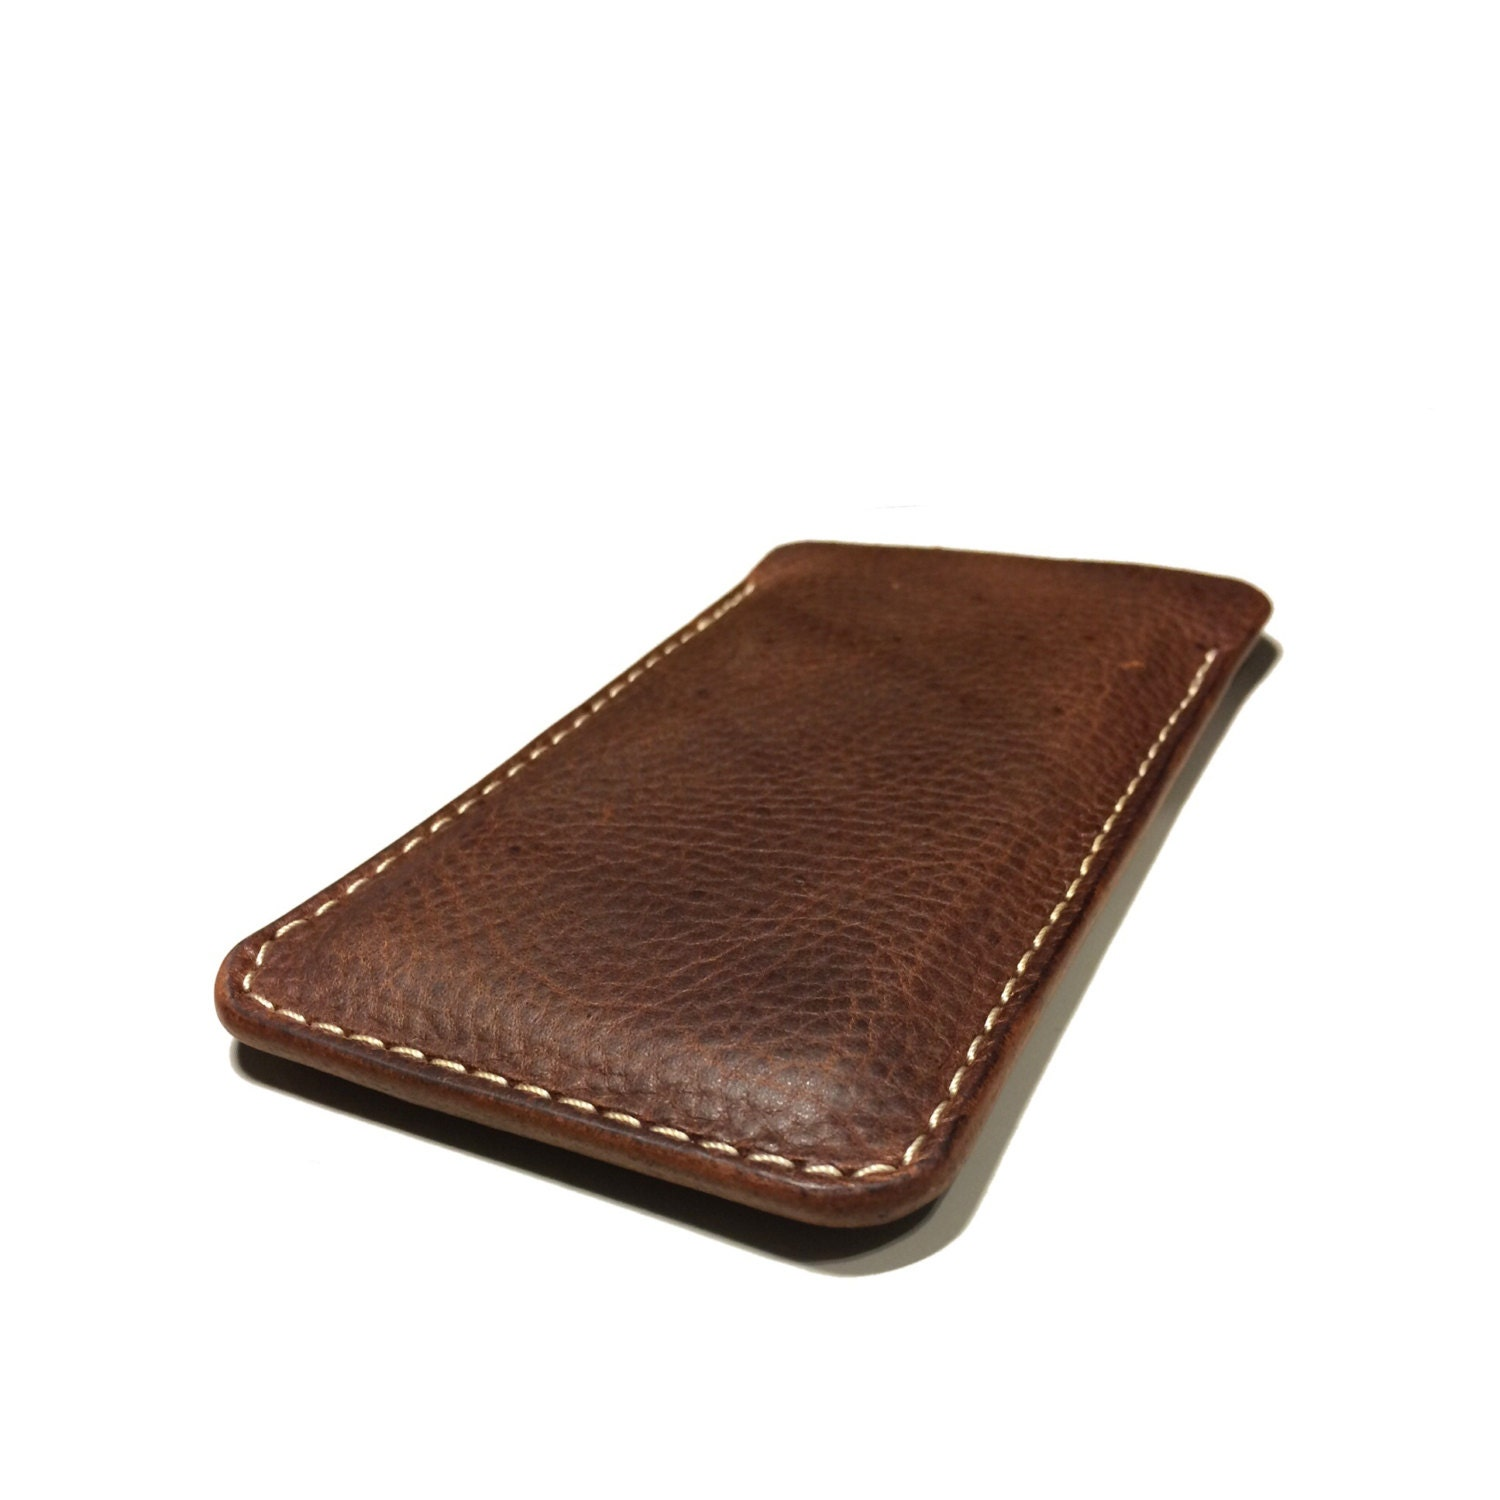 info for c9134 590af iPhone 6S Plus Sleeve Oil Tanned Leather iPhone 6S Sleeve, iPhone 6 Plus  case, iPhone 5S, Oil Tanned Leather, Samsung Galaxy S6 Edge Plus